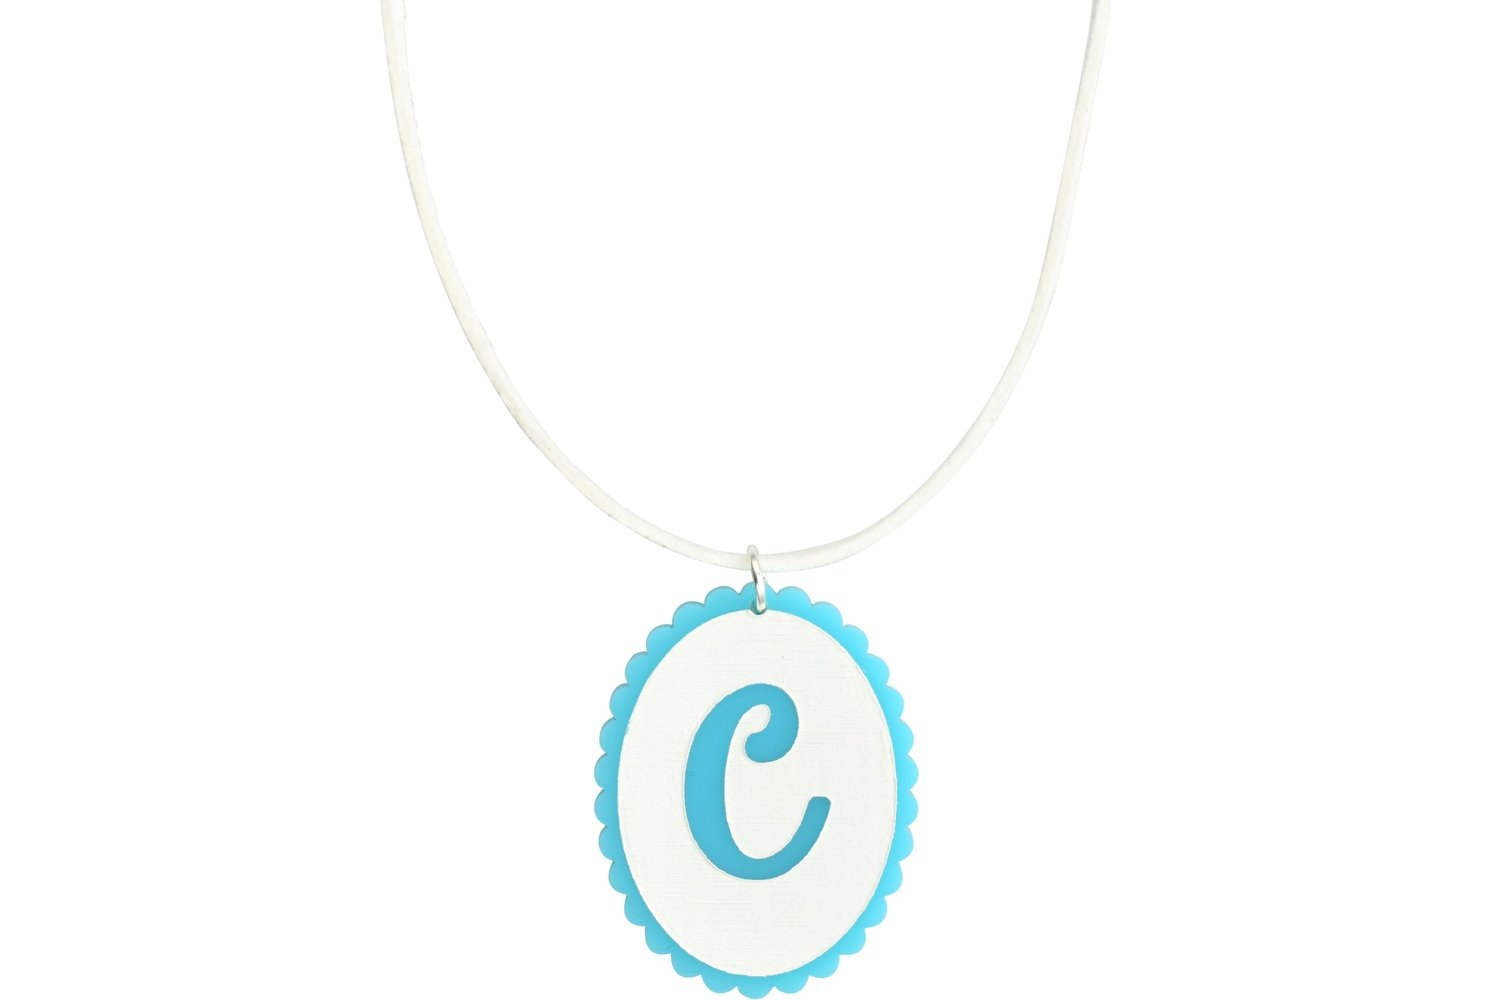 Scallop Initial Pendant with Suede Leather Cord Necklace